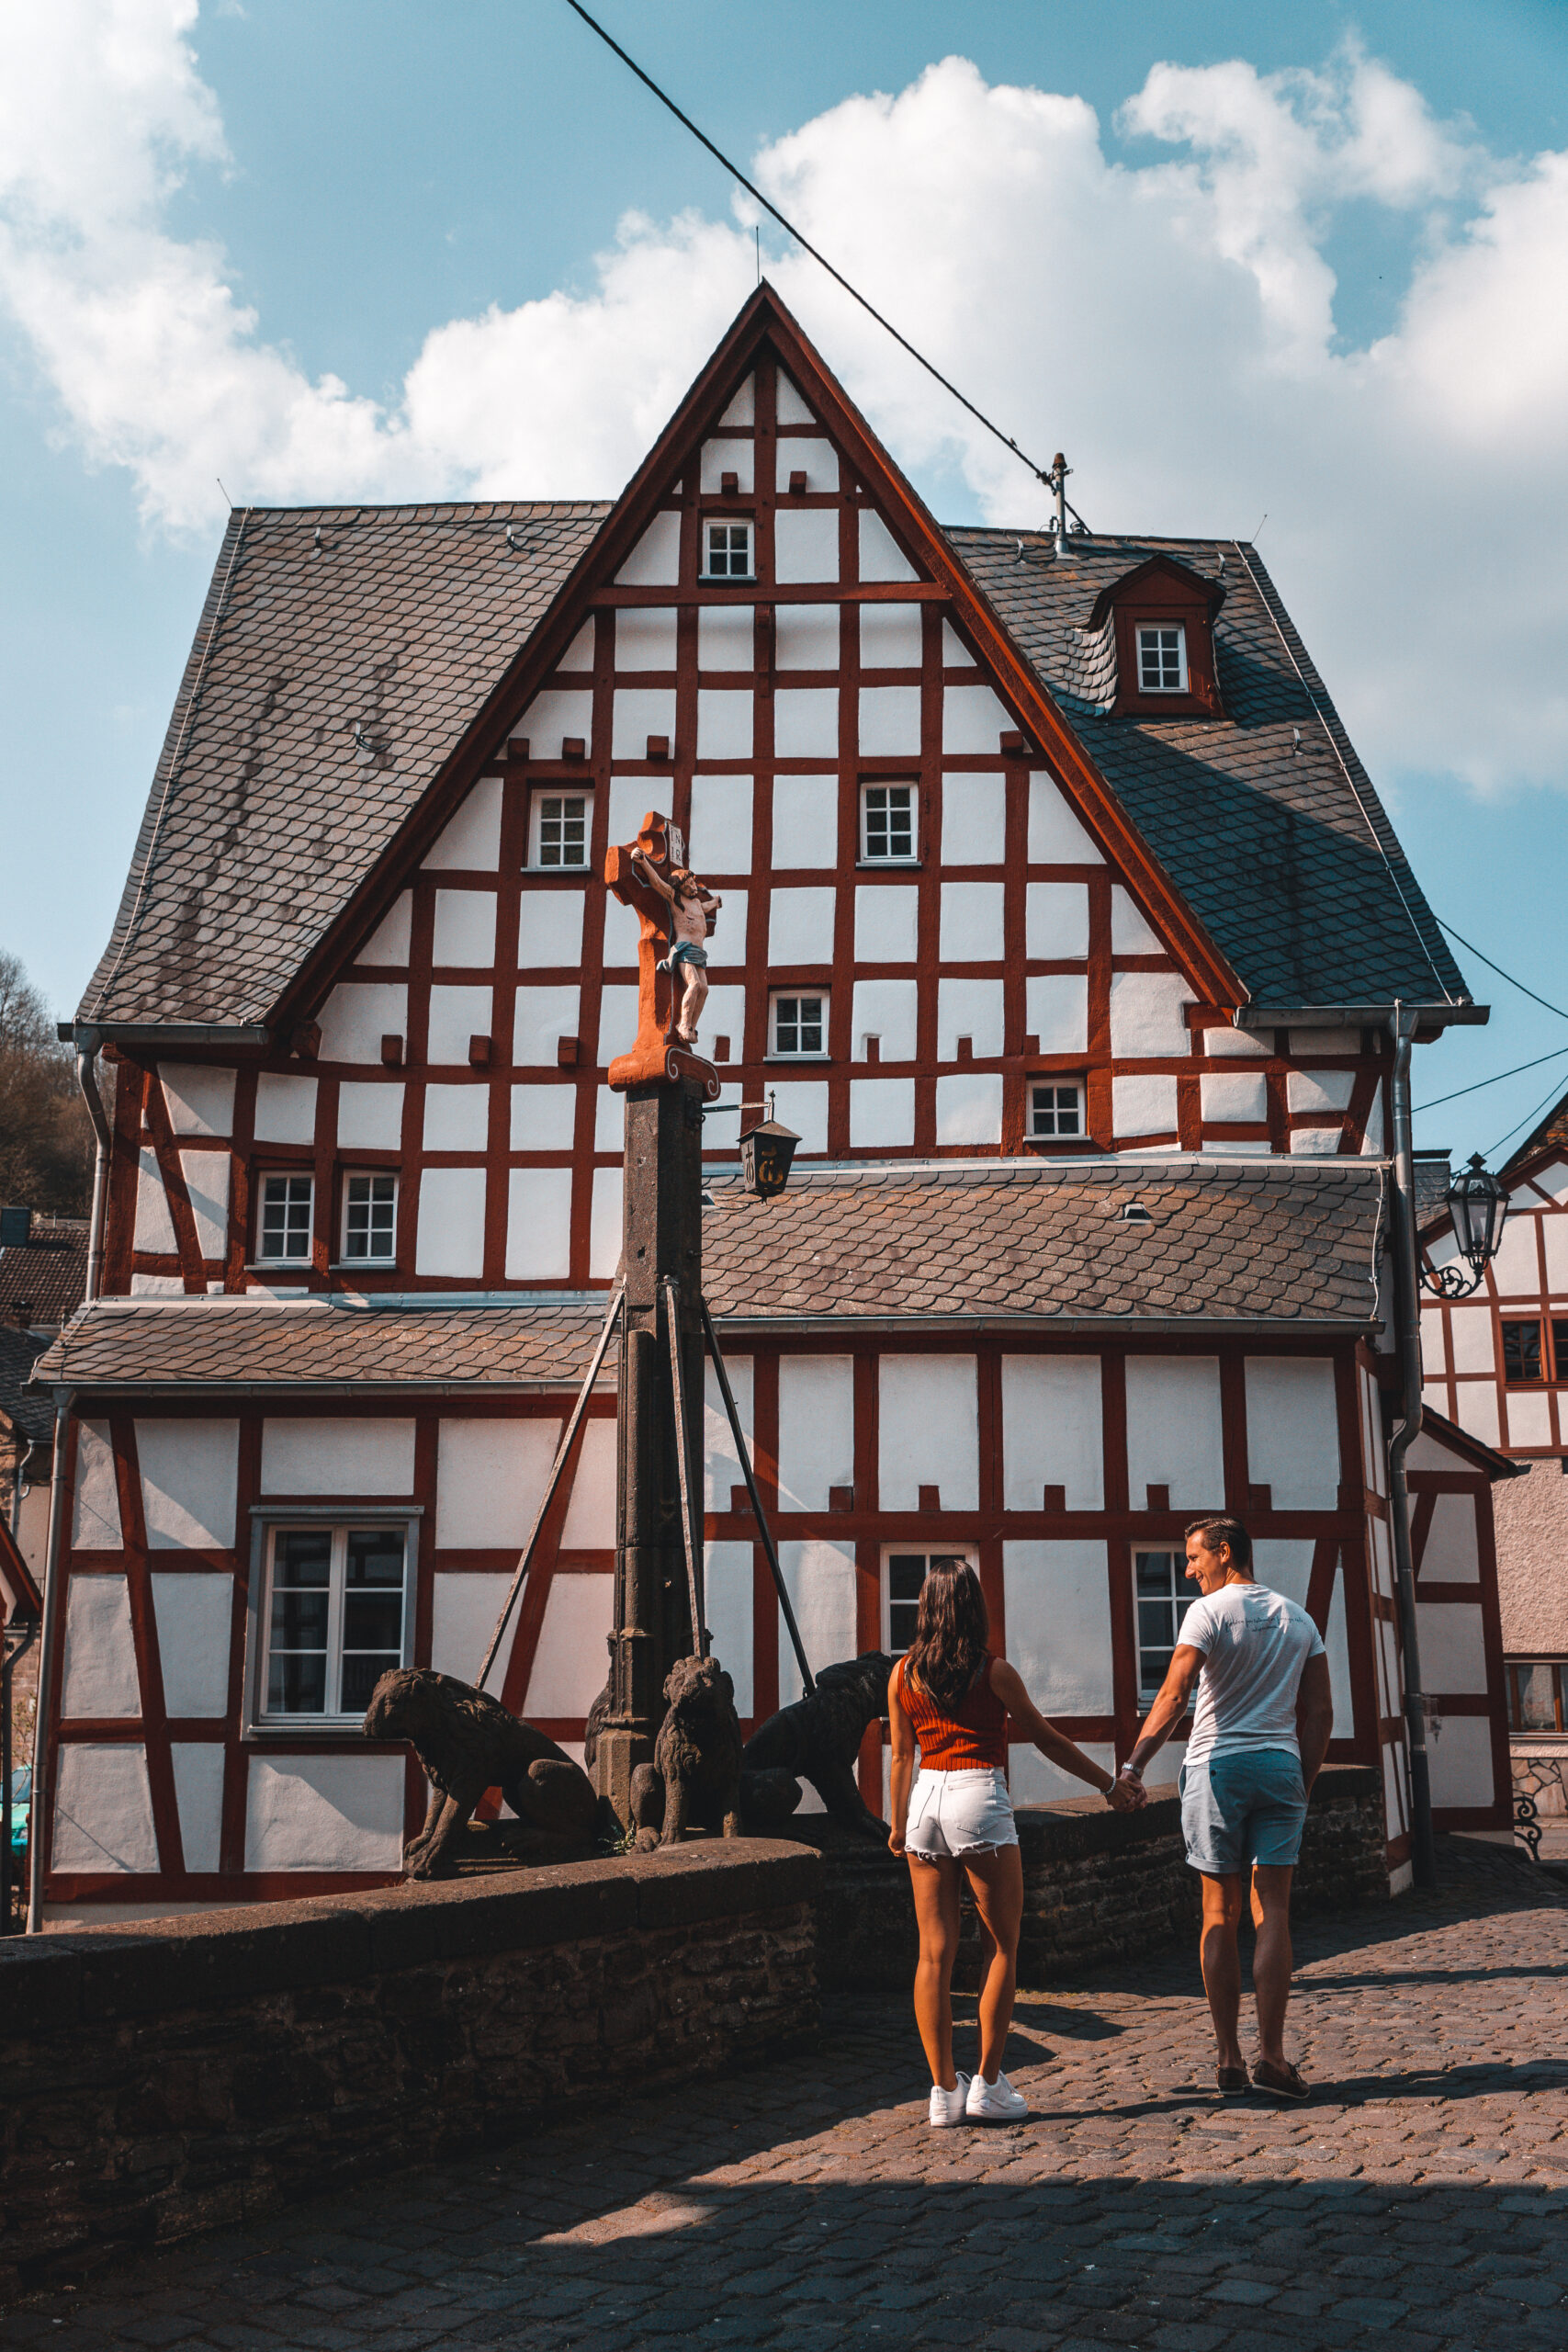 Monreal | German Eifel | Day Trips from Cologne